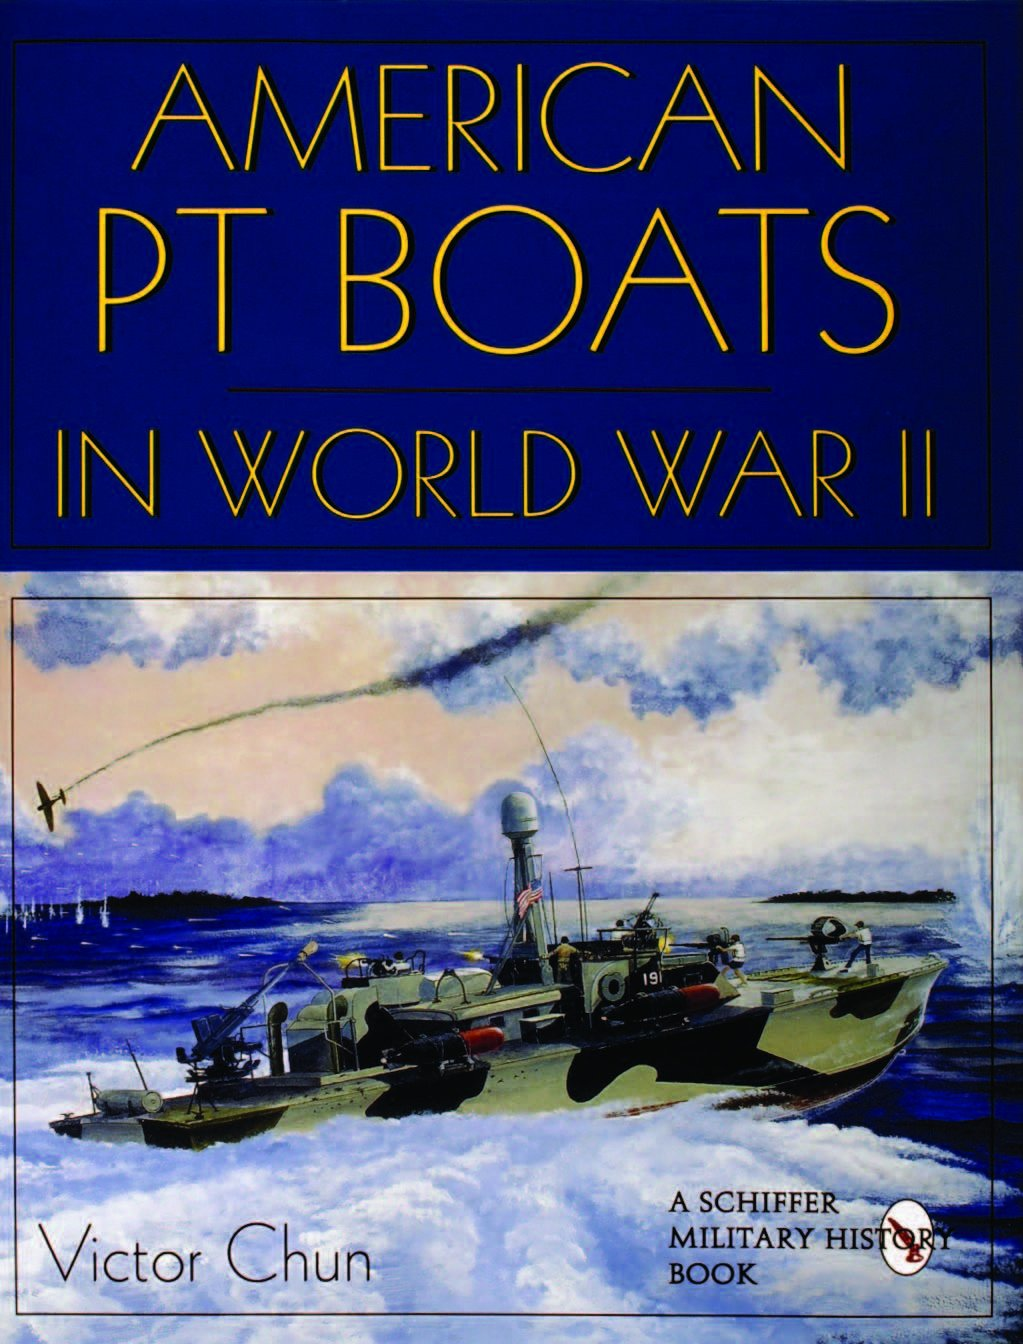 American PT Boats in World War II: by Schiffer